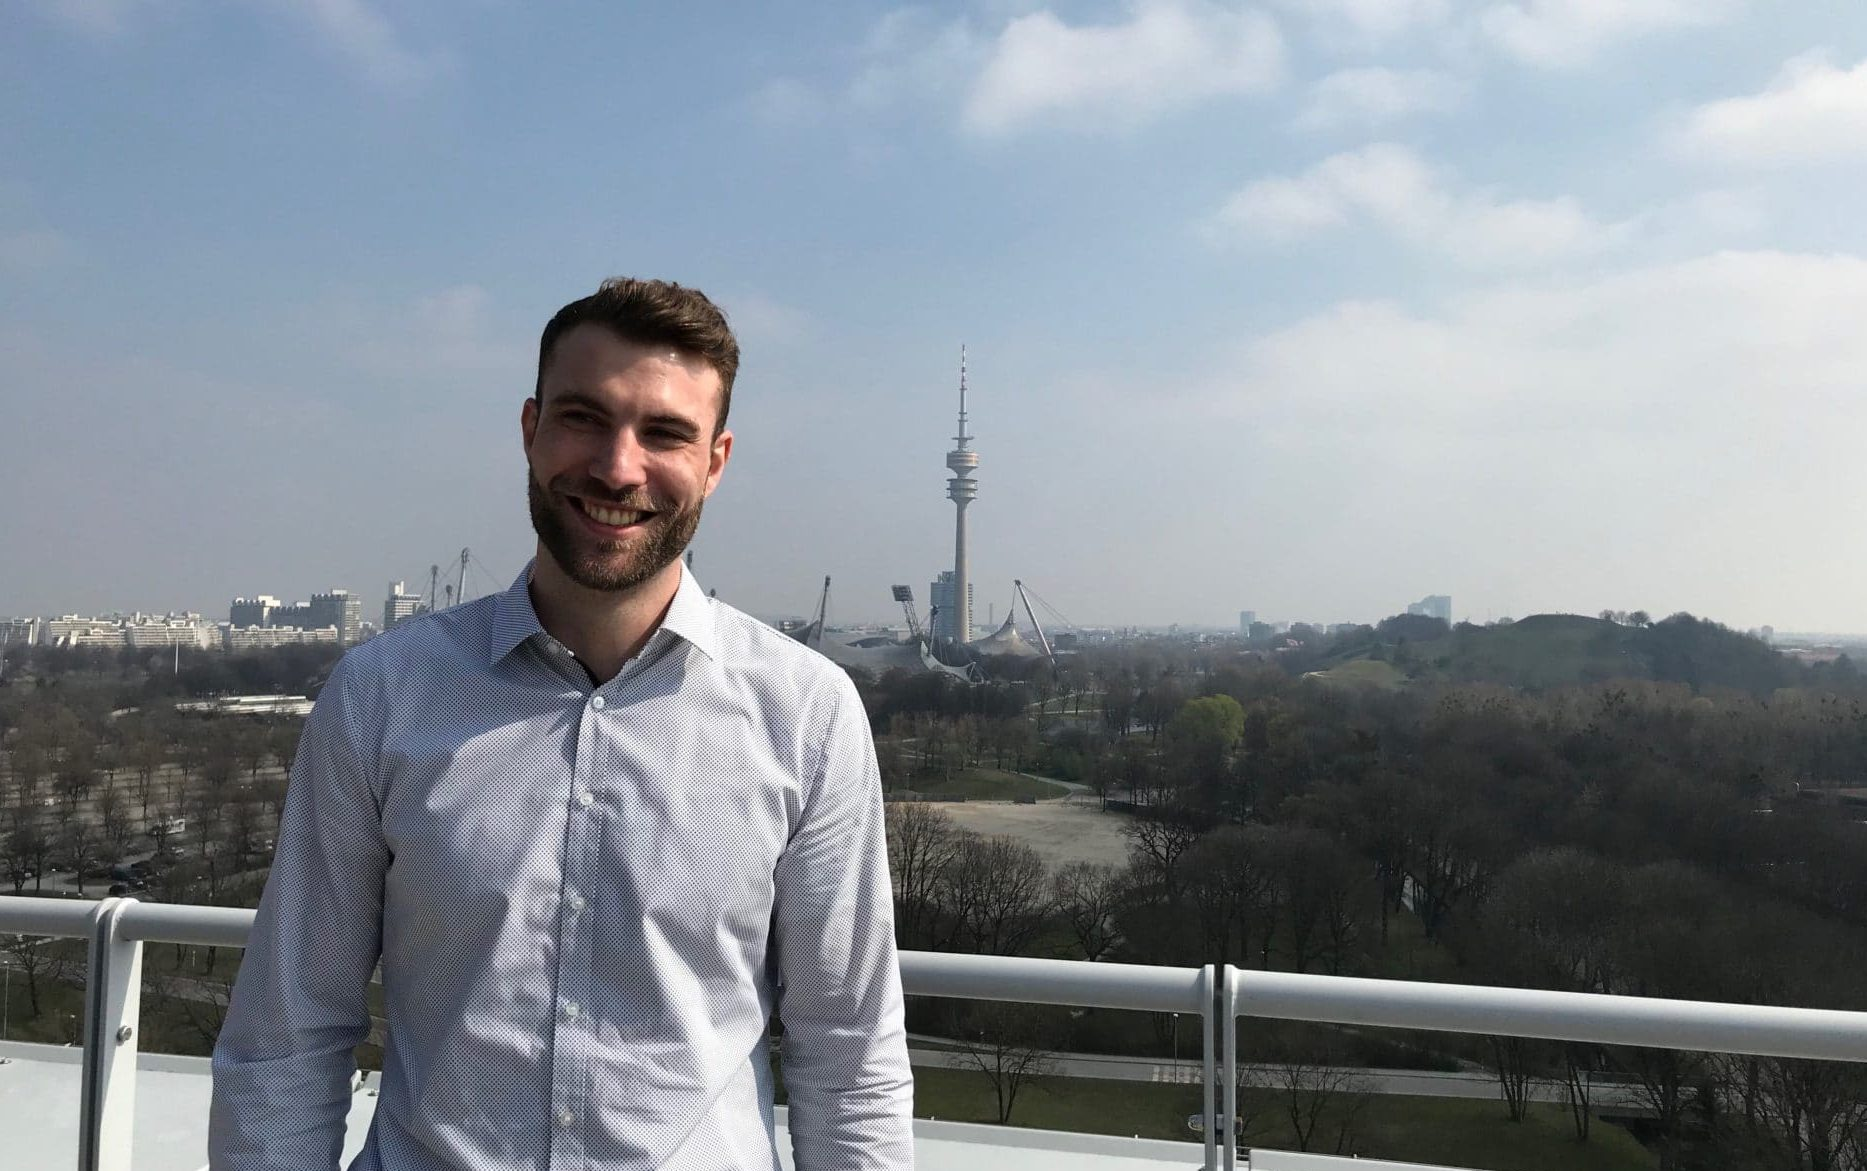 Michael Gehring - Trainee Data Science